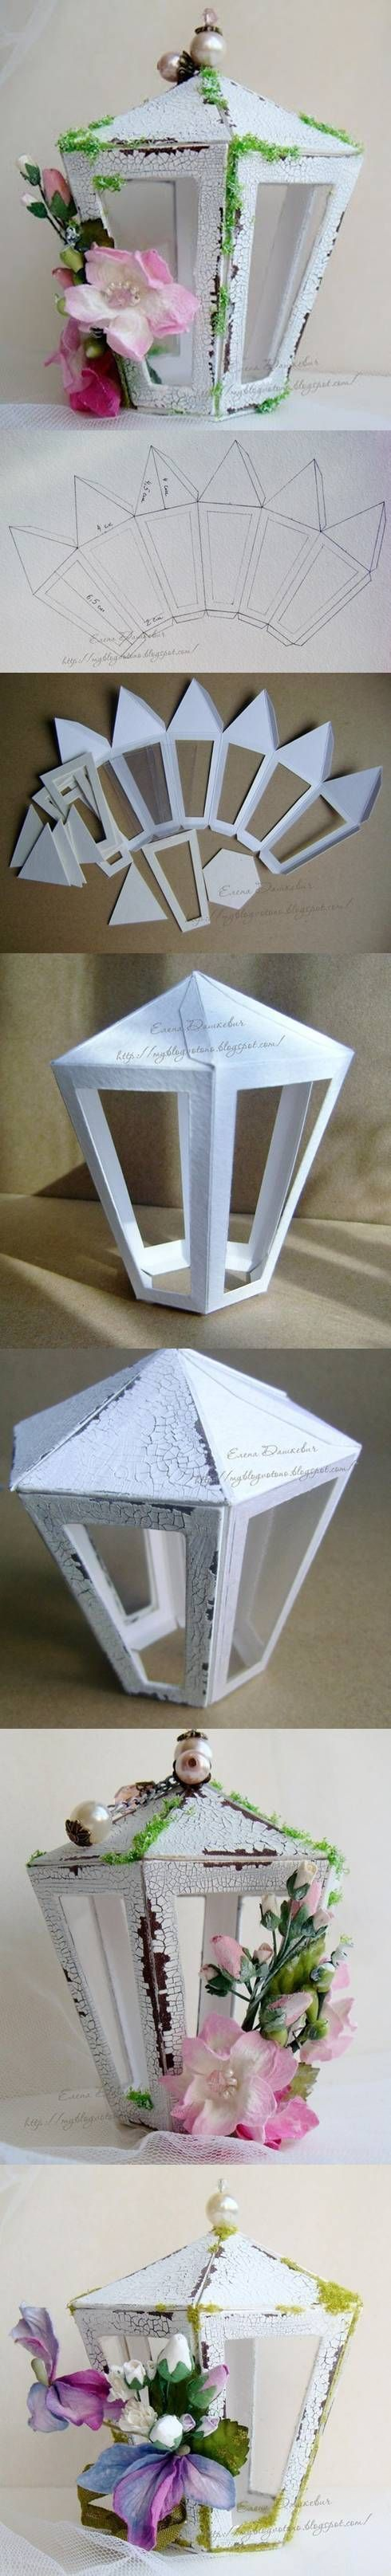 Tinker paper lantern! Free pattern. - Crafts - These great crafts to make with your kids - Tips & Crafts - Was thinking about it!